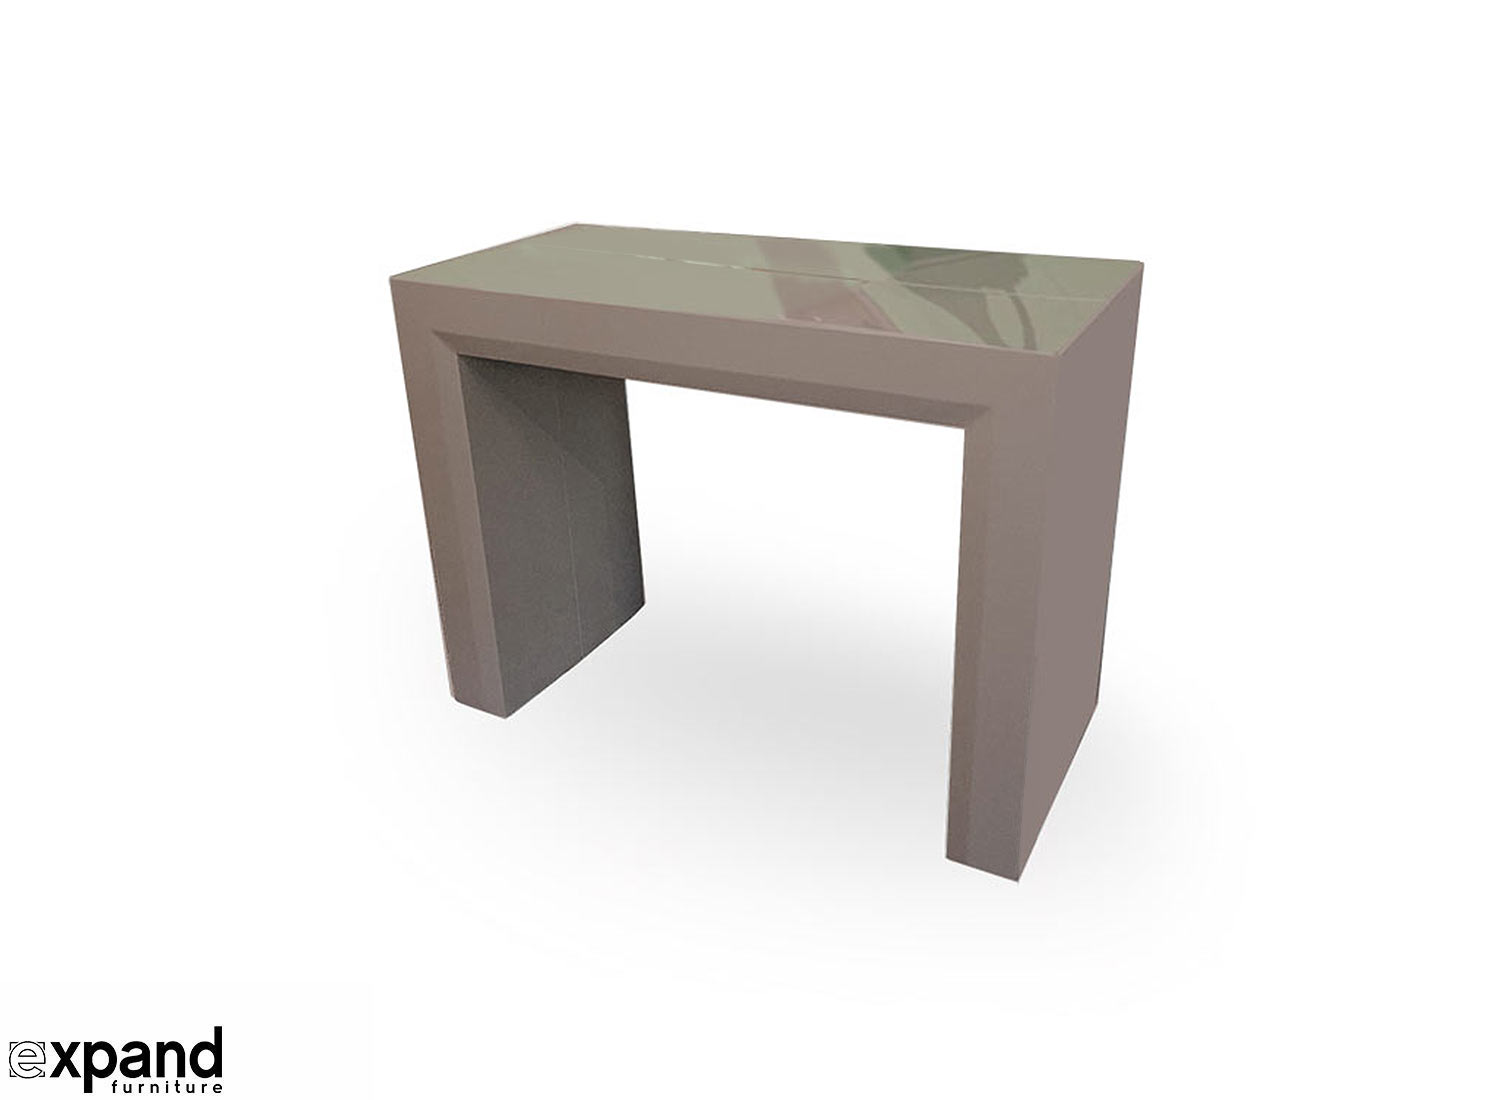 50 inch wide sofa table for Sofa table 50 inches